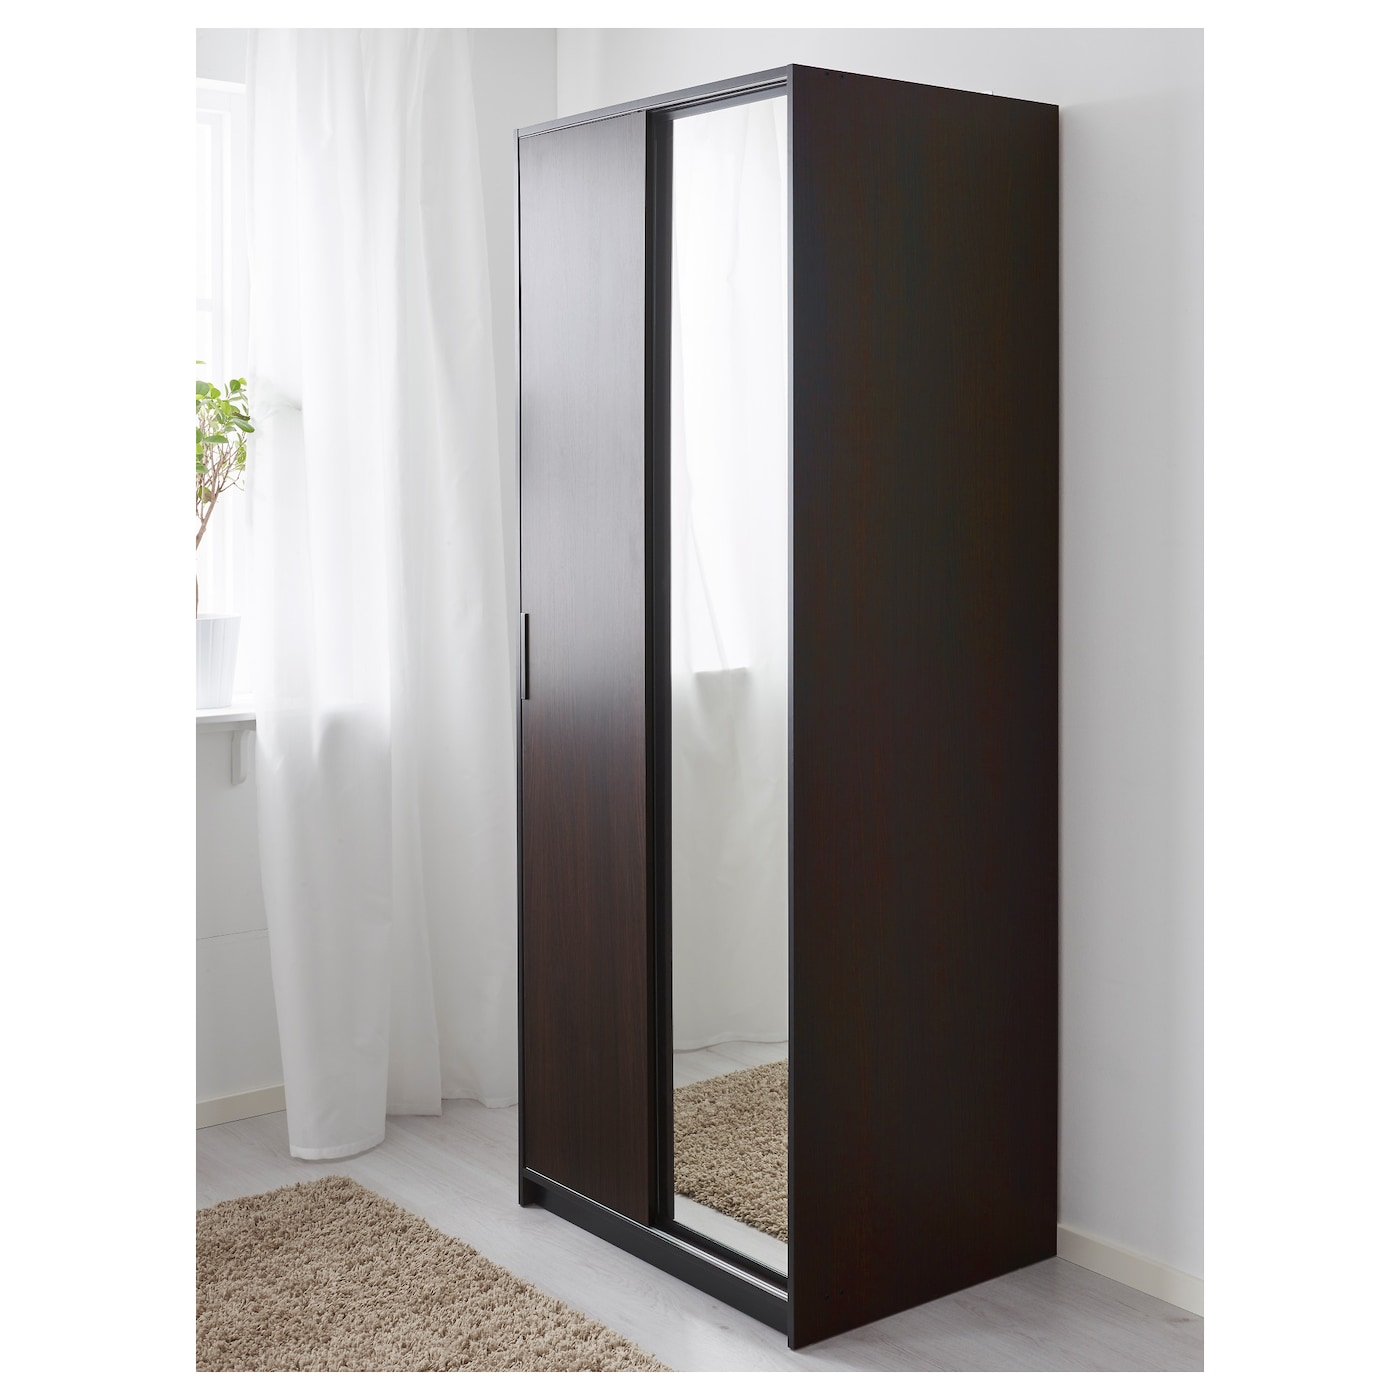 trysil wardrobe dark brown mirror glass 79x61x202 cm ikea. Black Bedroom Furniture Sets. Home Design Ideas